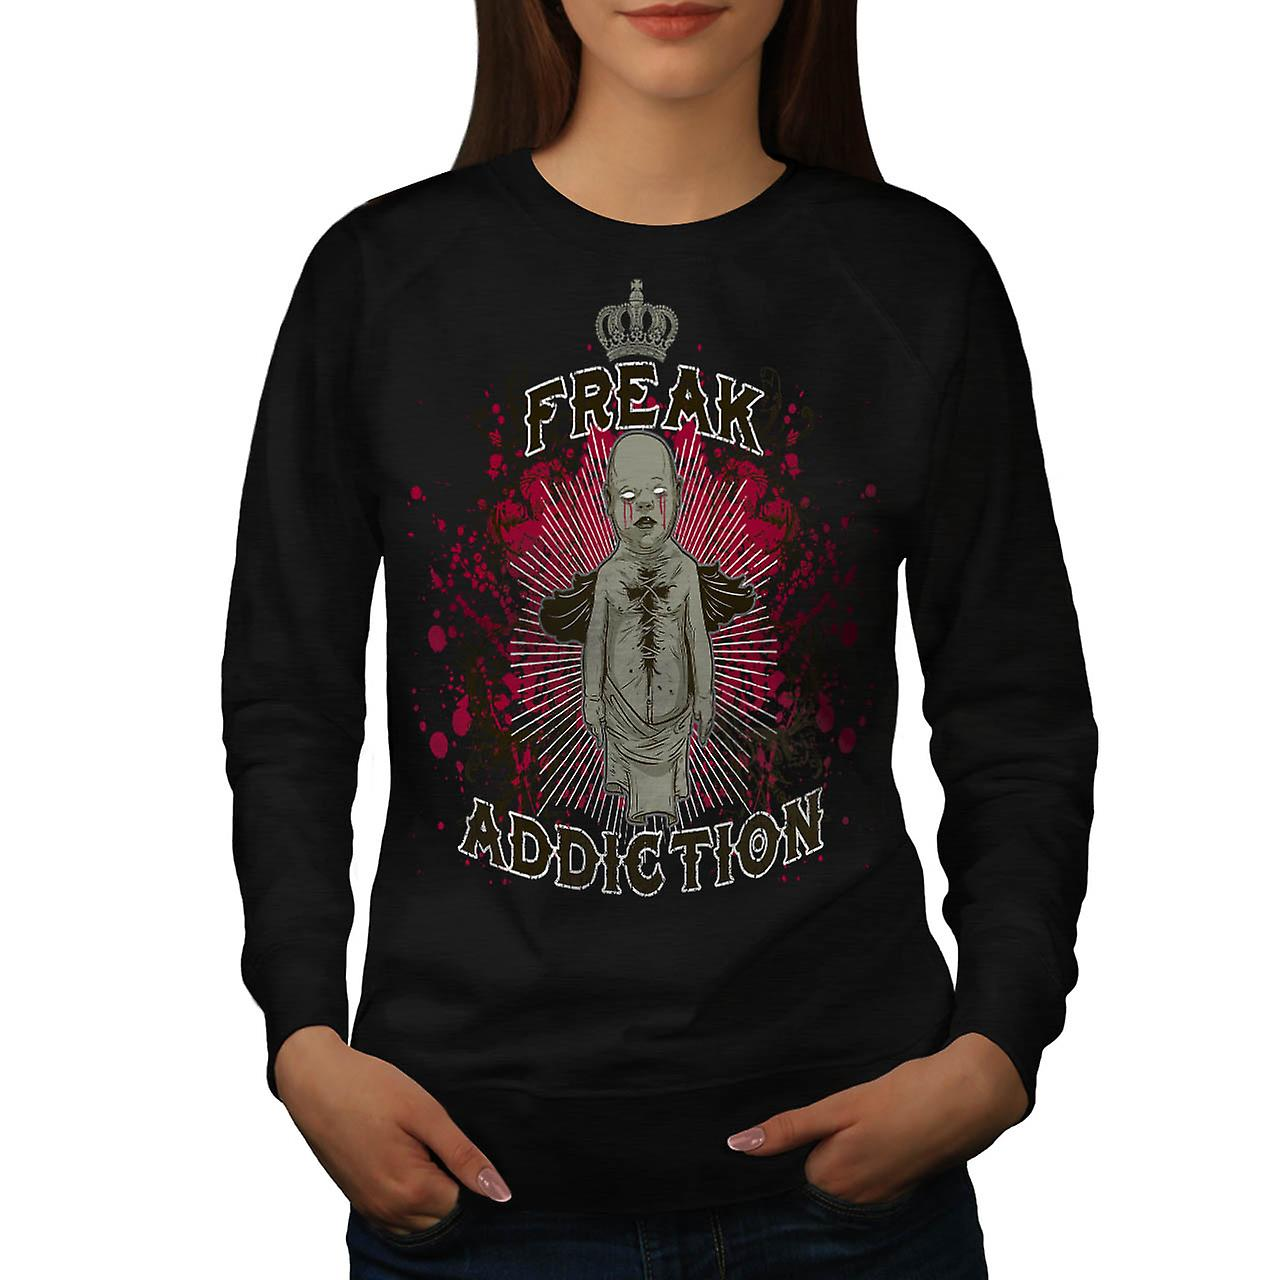 Freak Royal Addiction fantôme bébé femme Black Sweatshirt | Wellcoda